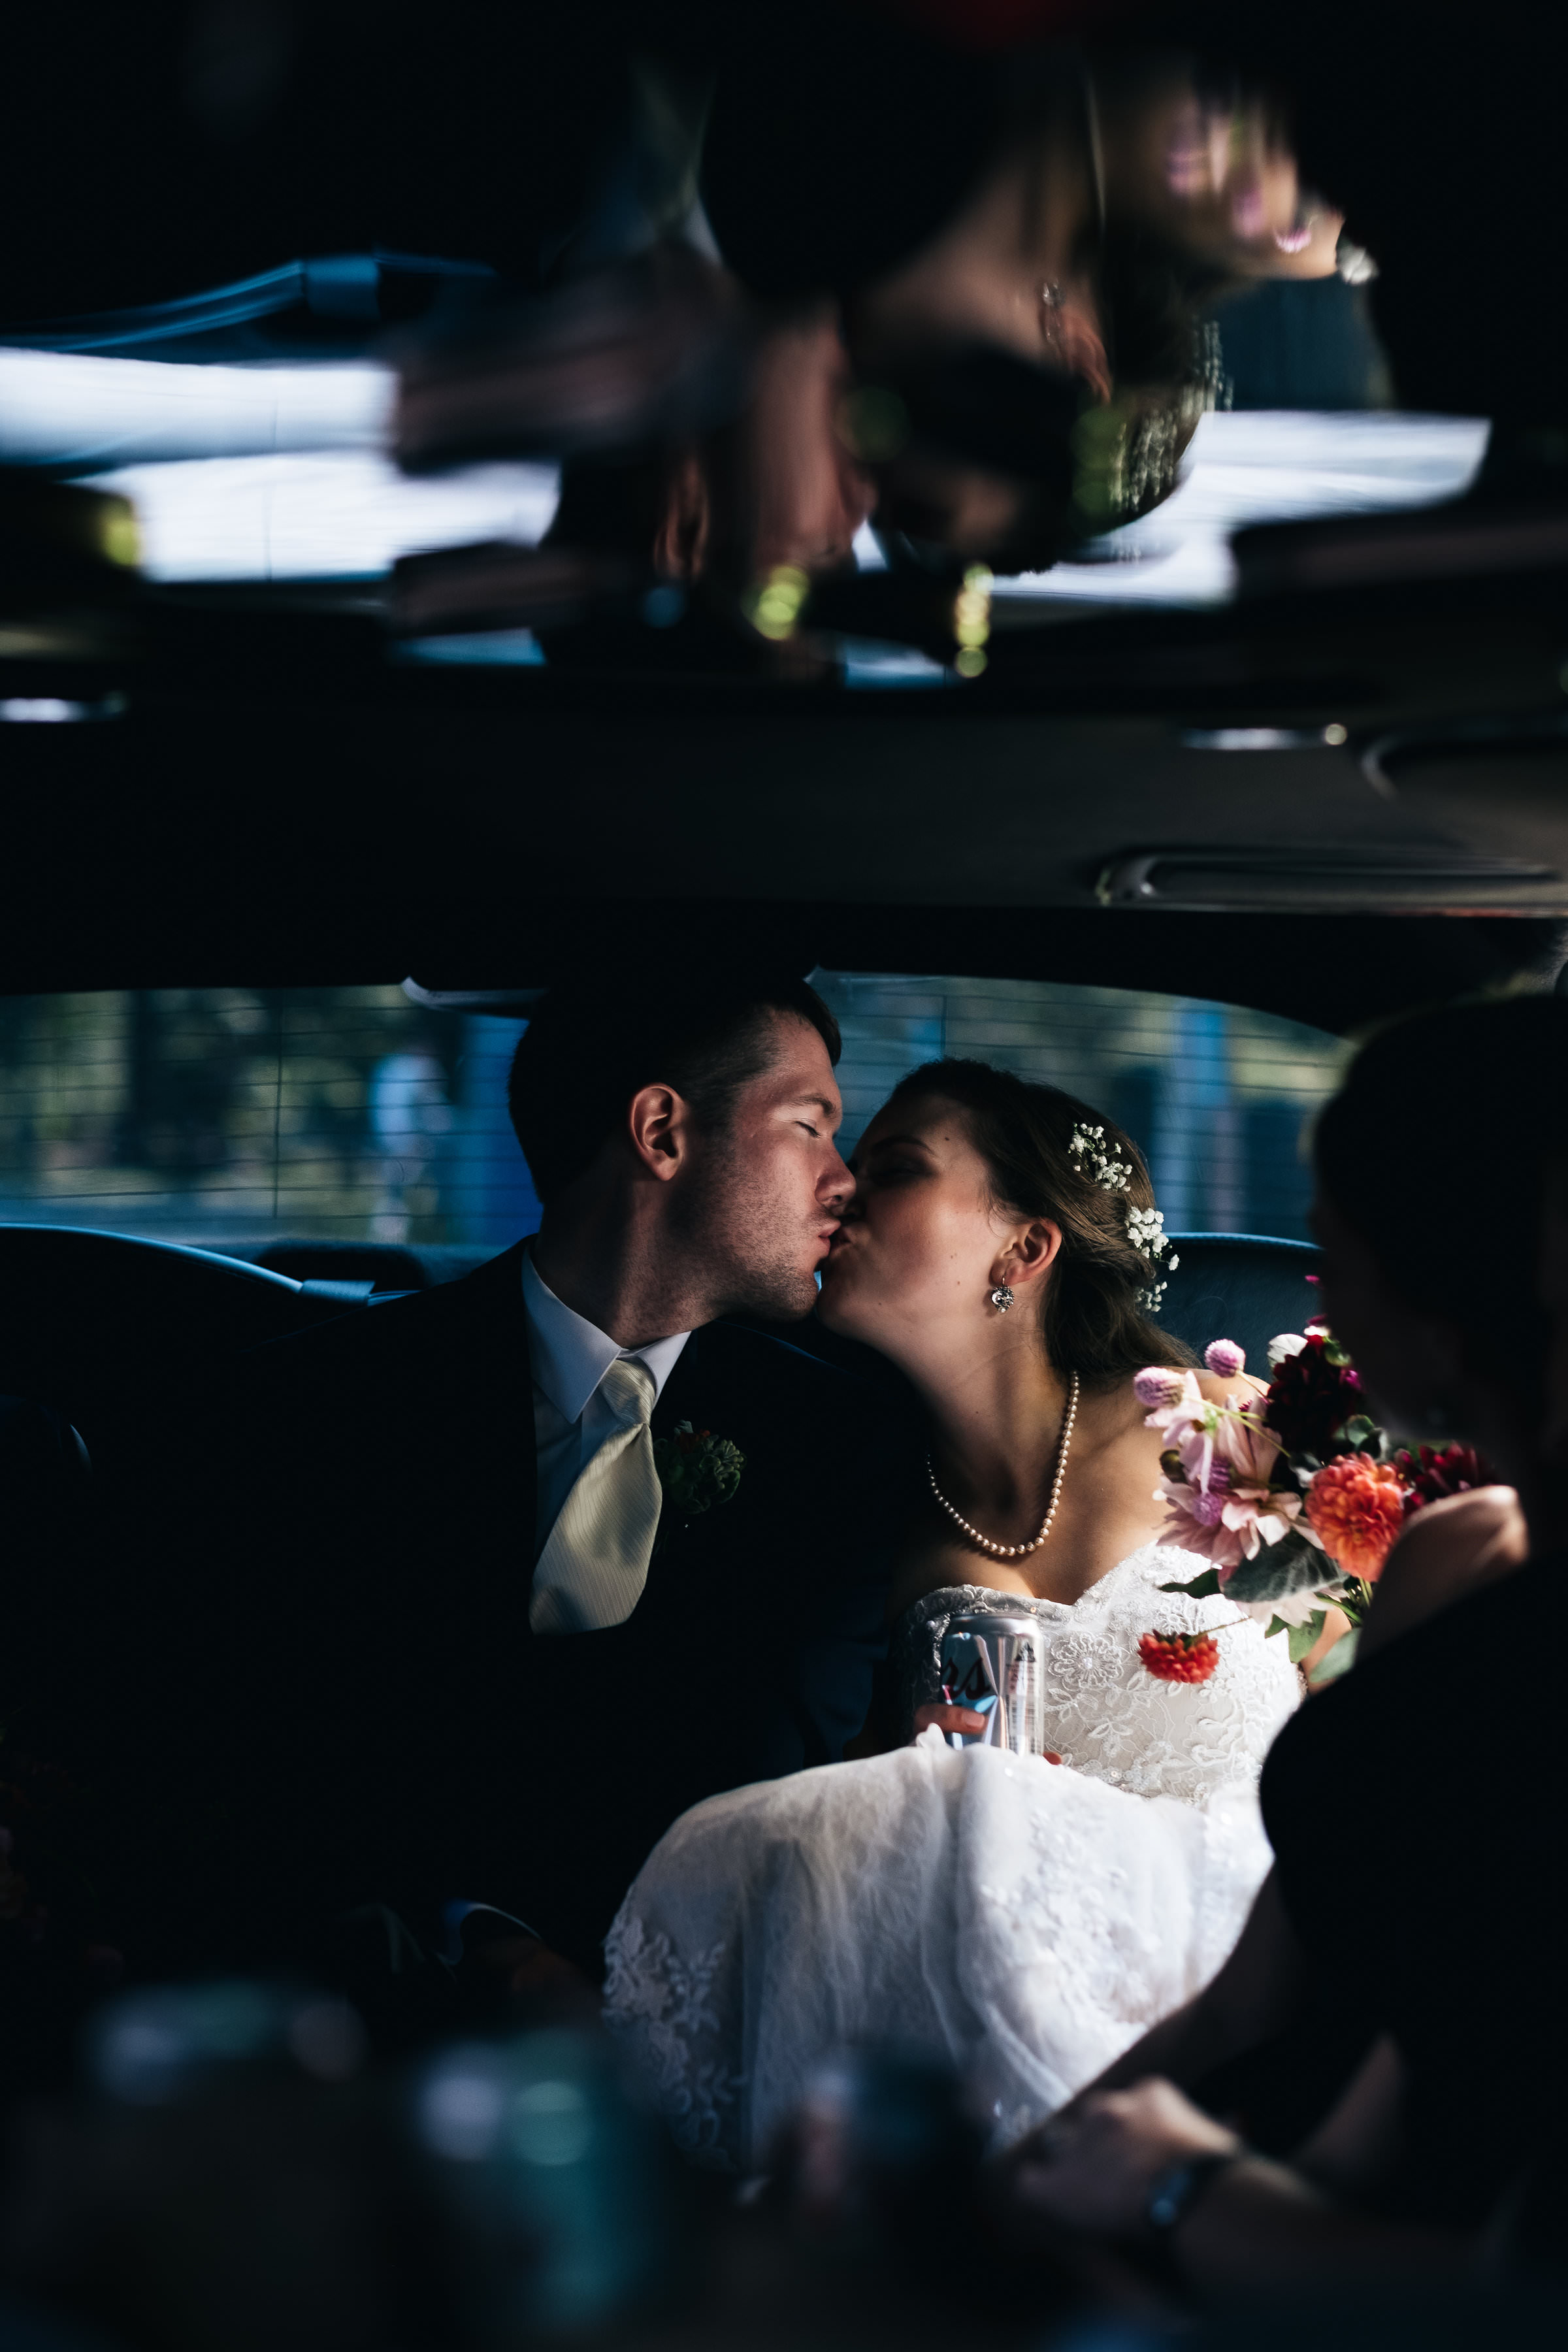 Bride and groom kissing in the back the of a limo.